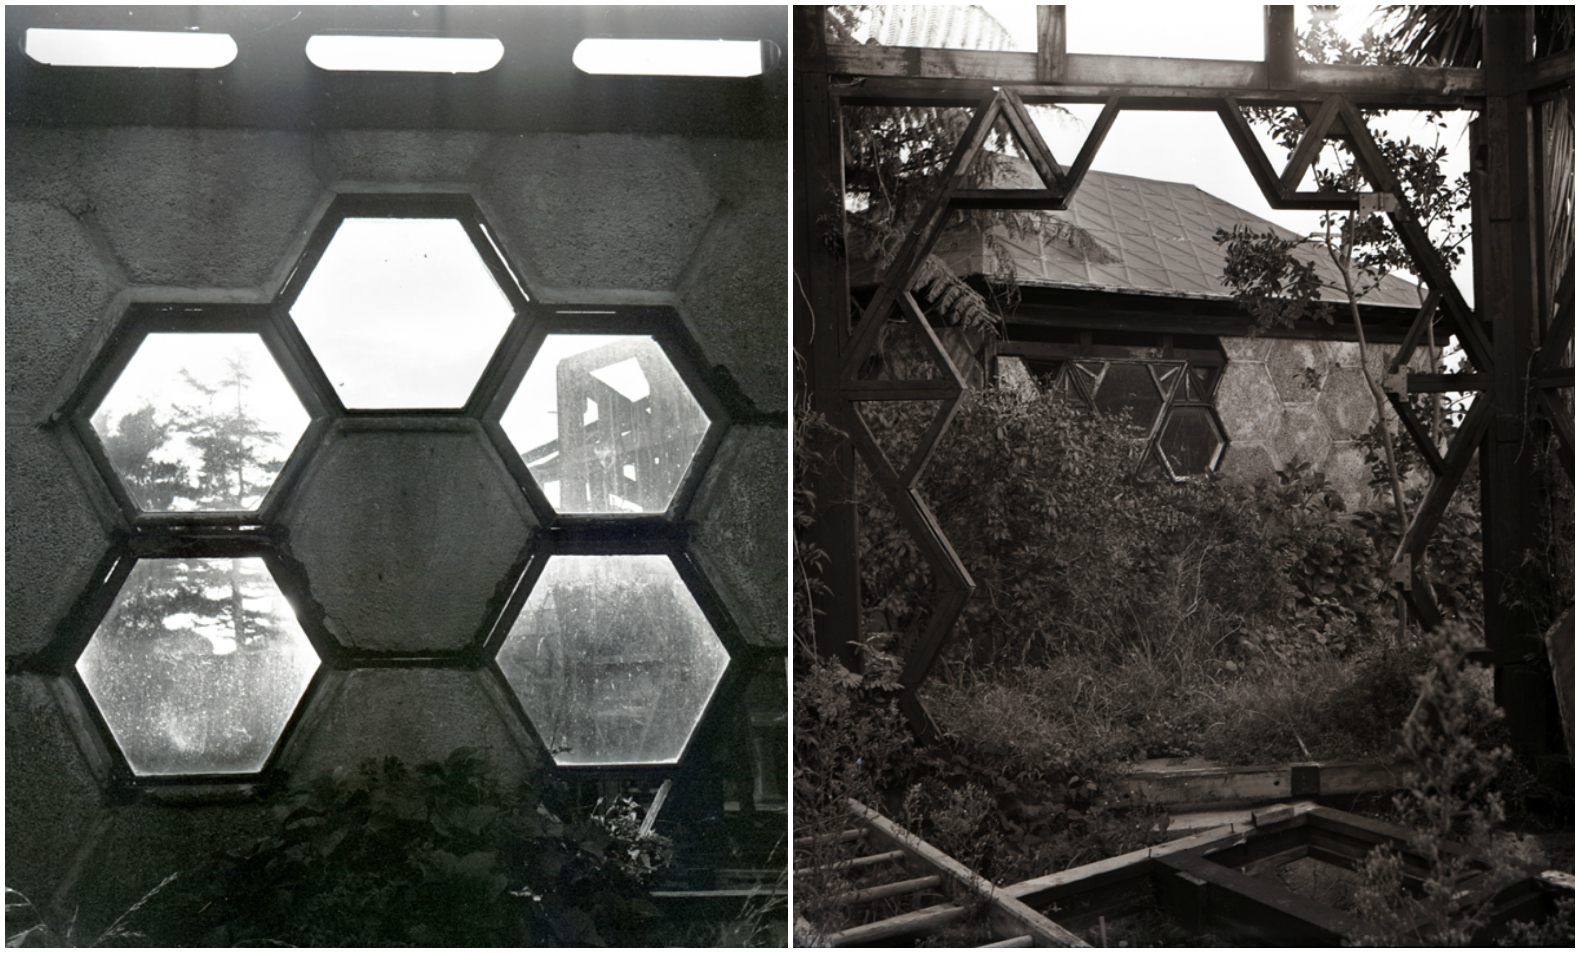 beekeeper built dream hexagonal house without  u0026 39 hateful